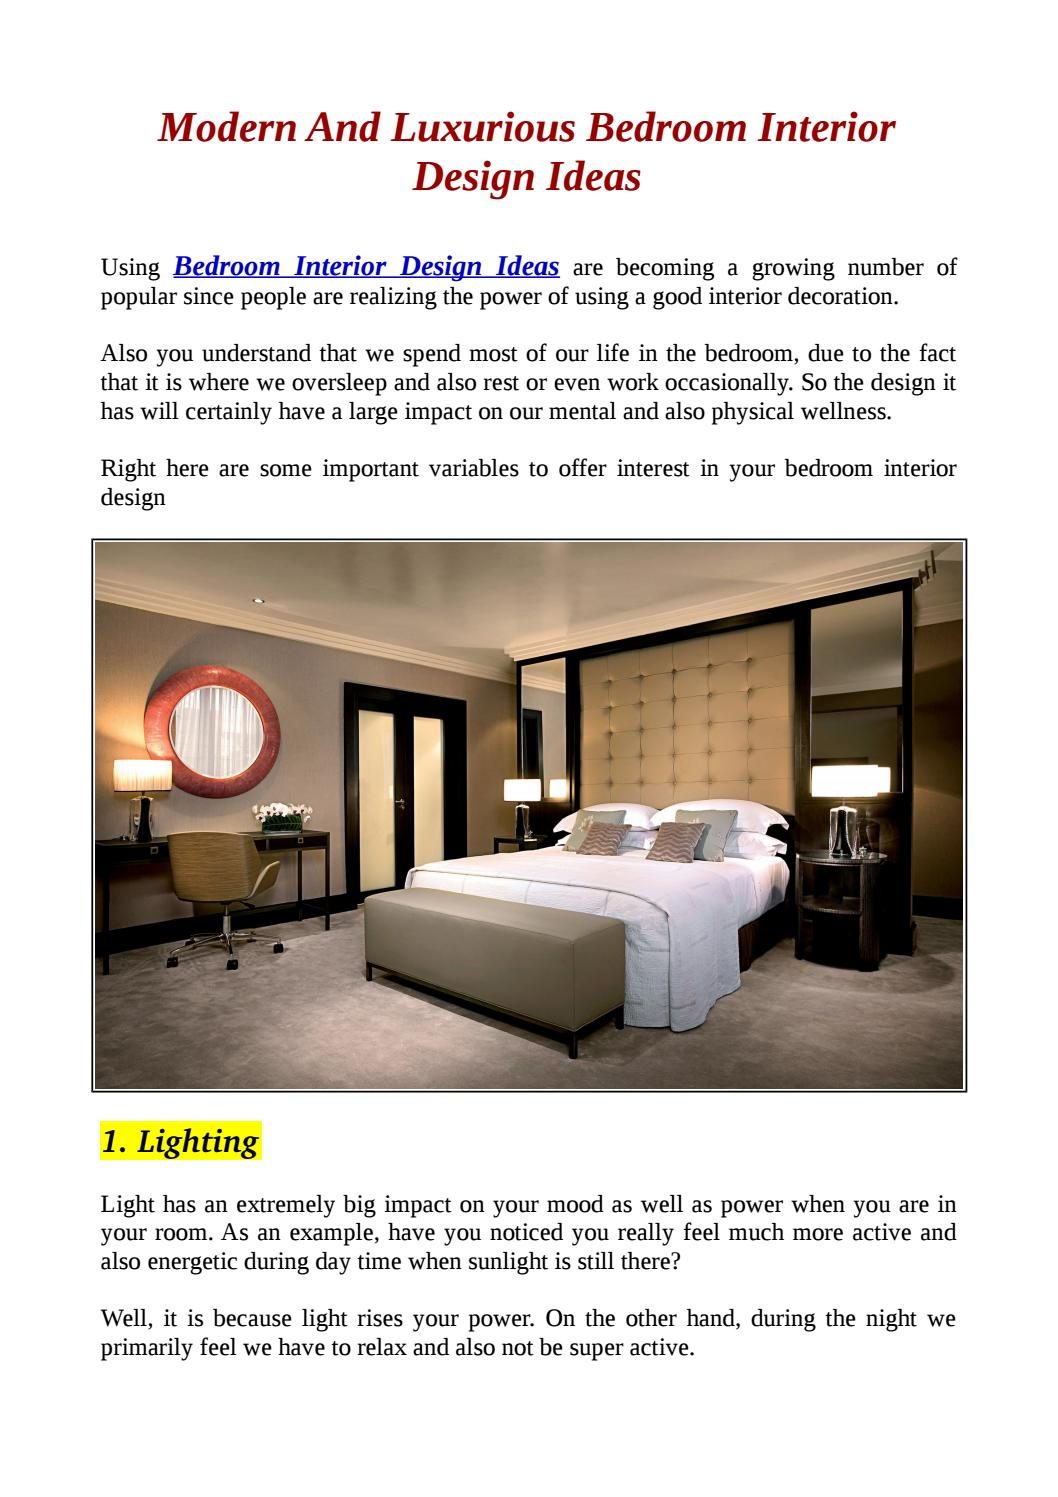 Modern And Luxurious Bedroom Interior Design Ideas By Architectures Ideas Issuu